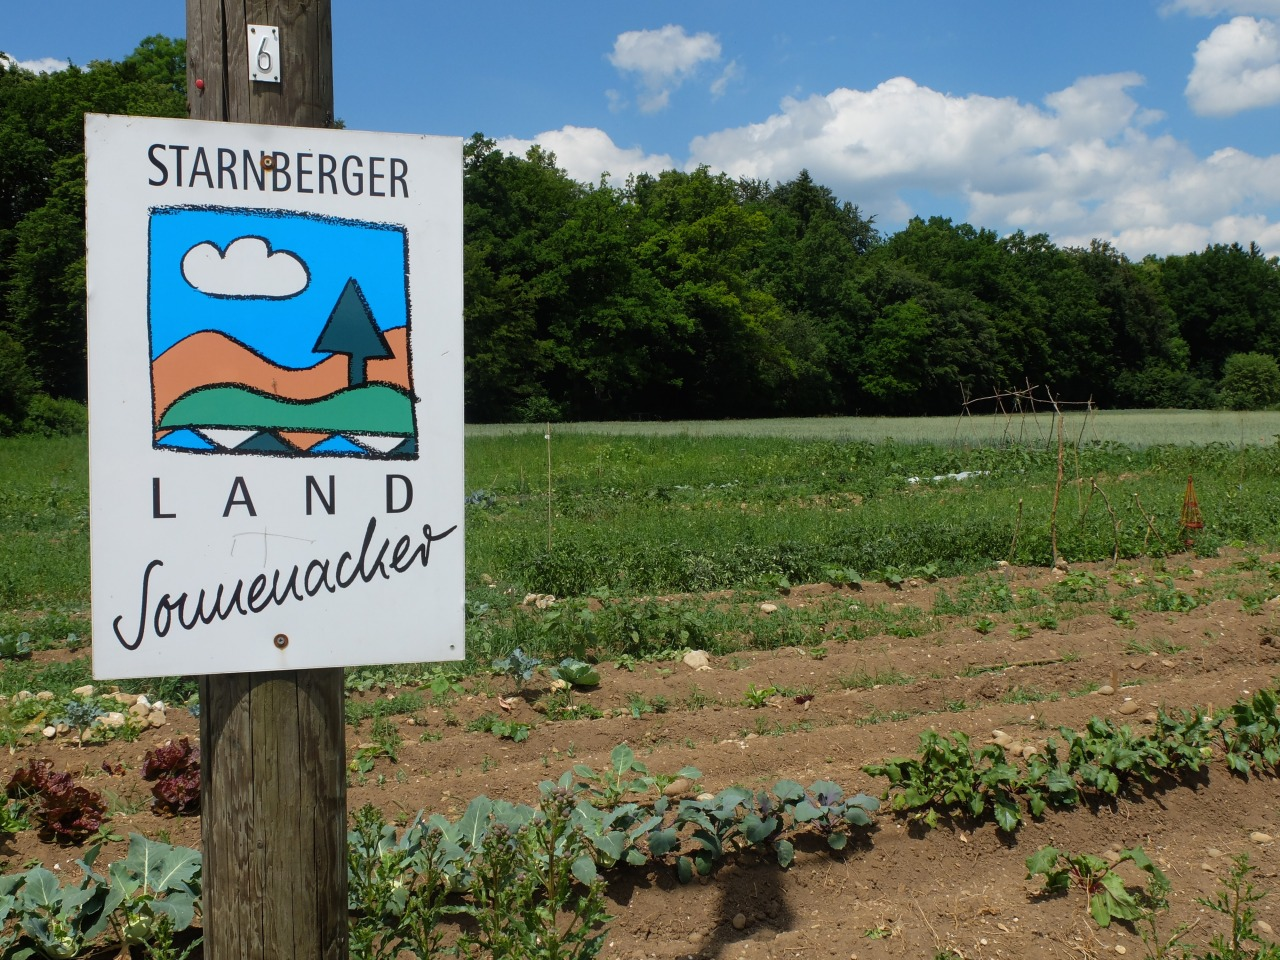 mangia minga - Unser Land Sonnenacker: rent a vegetable garden